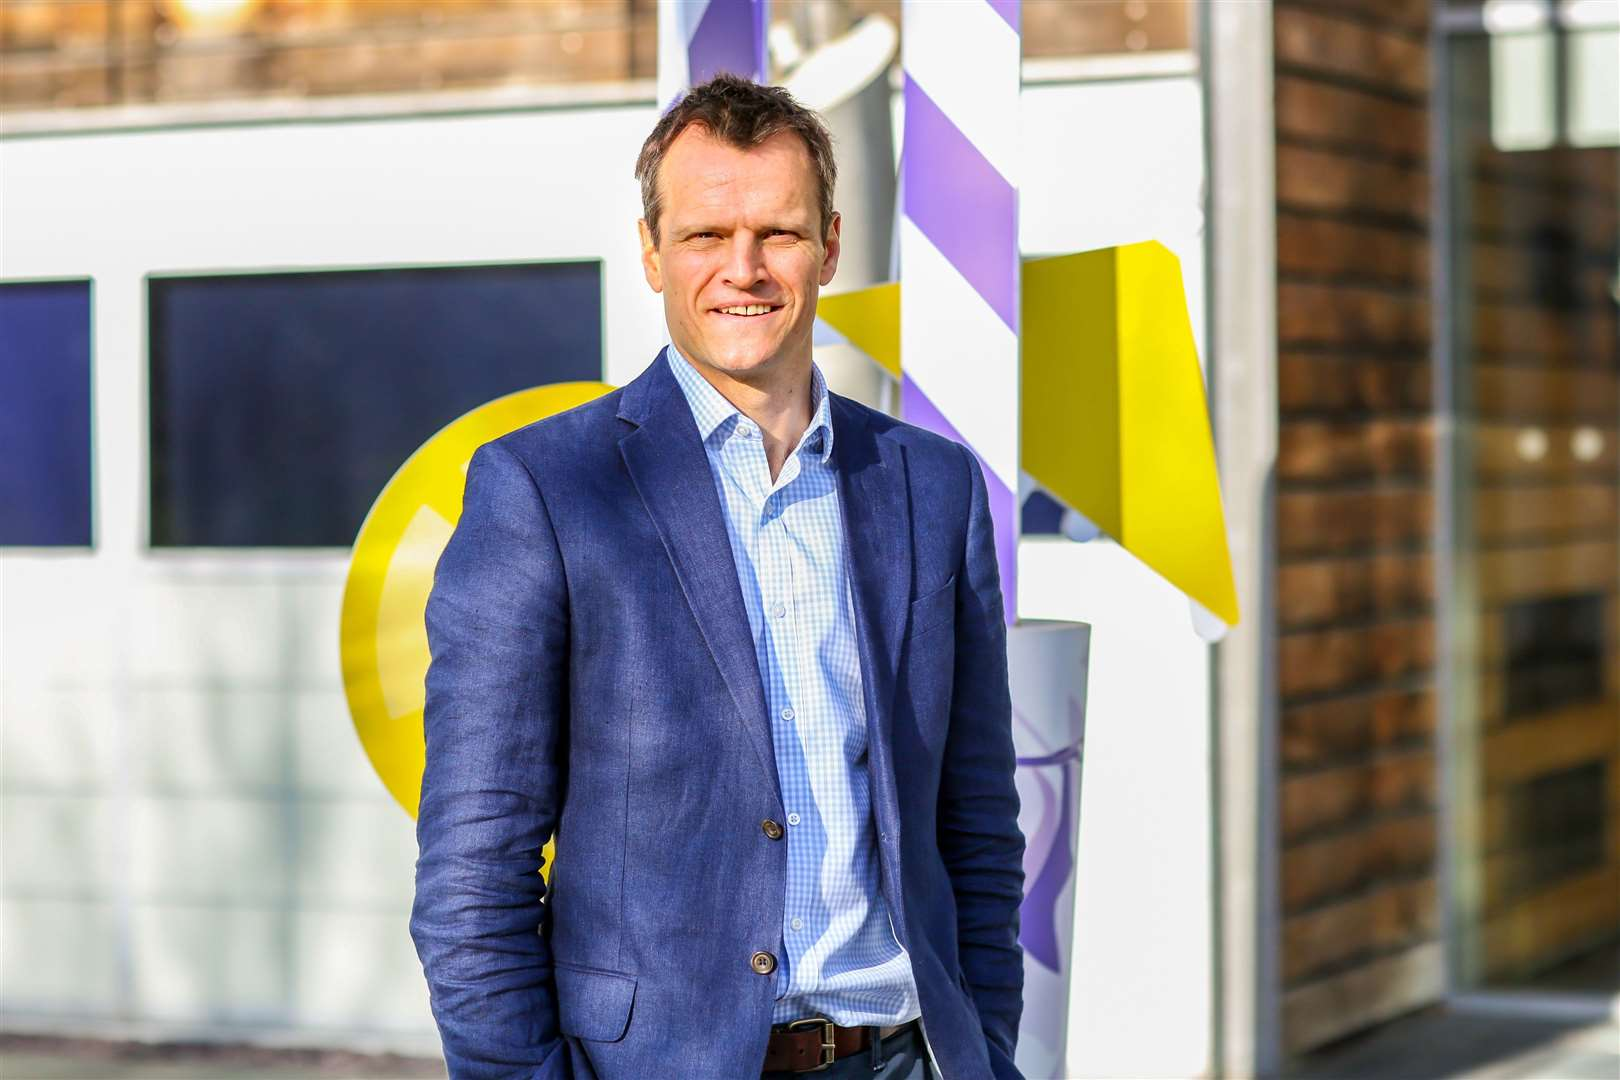 Hugo Loudon has joined Holiday Extras as CFO